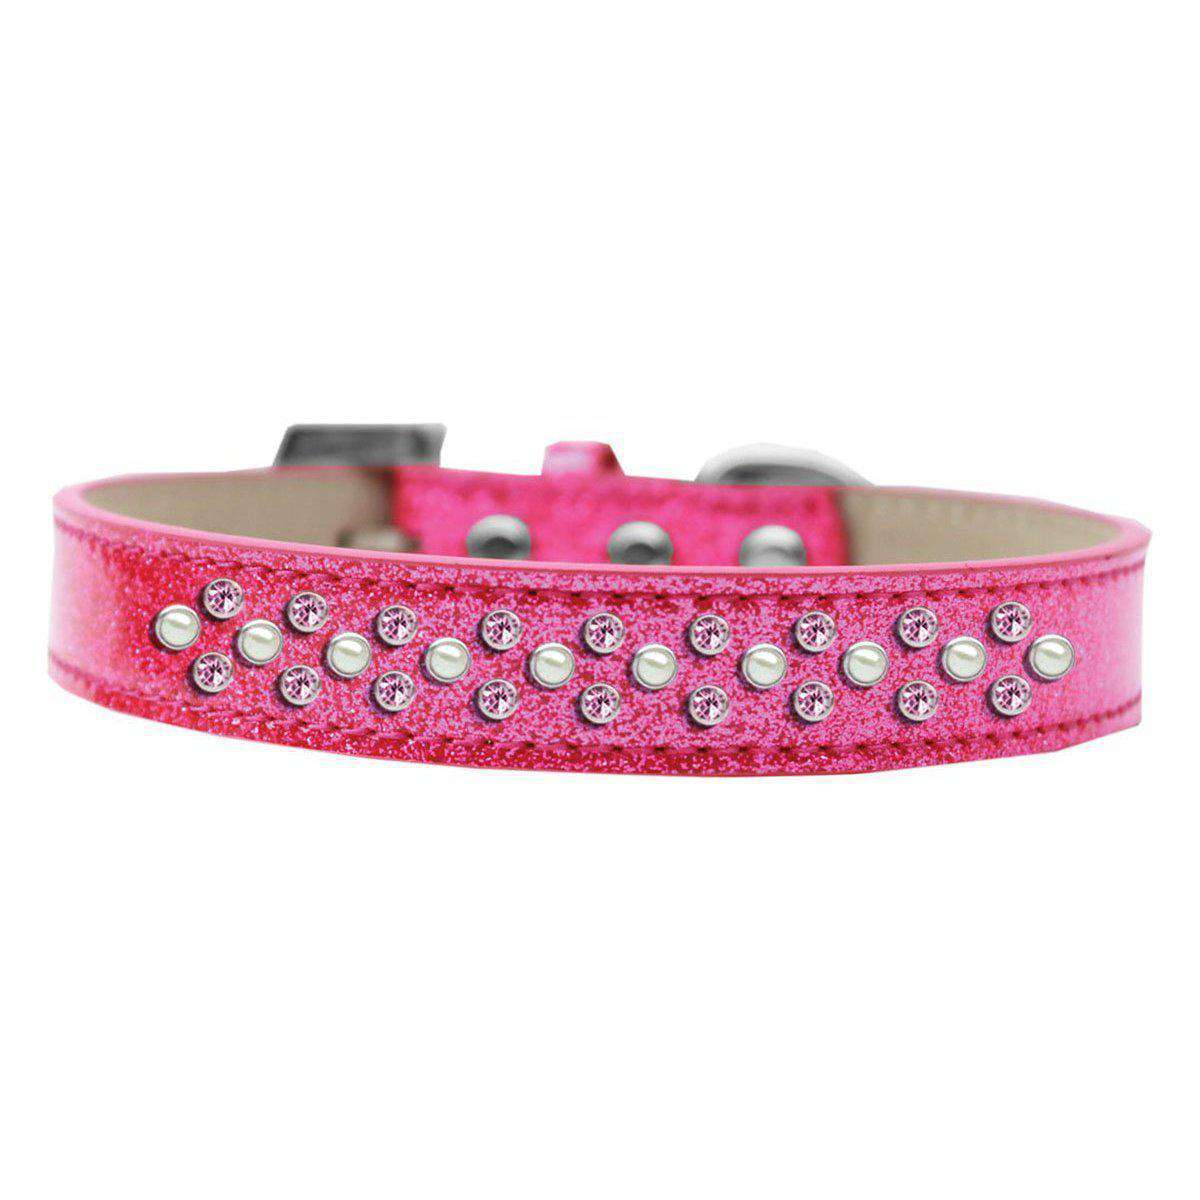 Mirage Pet Products Sprinkles Ice Cream Dog Collar Pearl And Light - Pink Crystals Size 14 - Pink-Mirage Pet Products-DirtyFurClothing